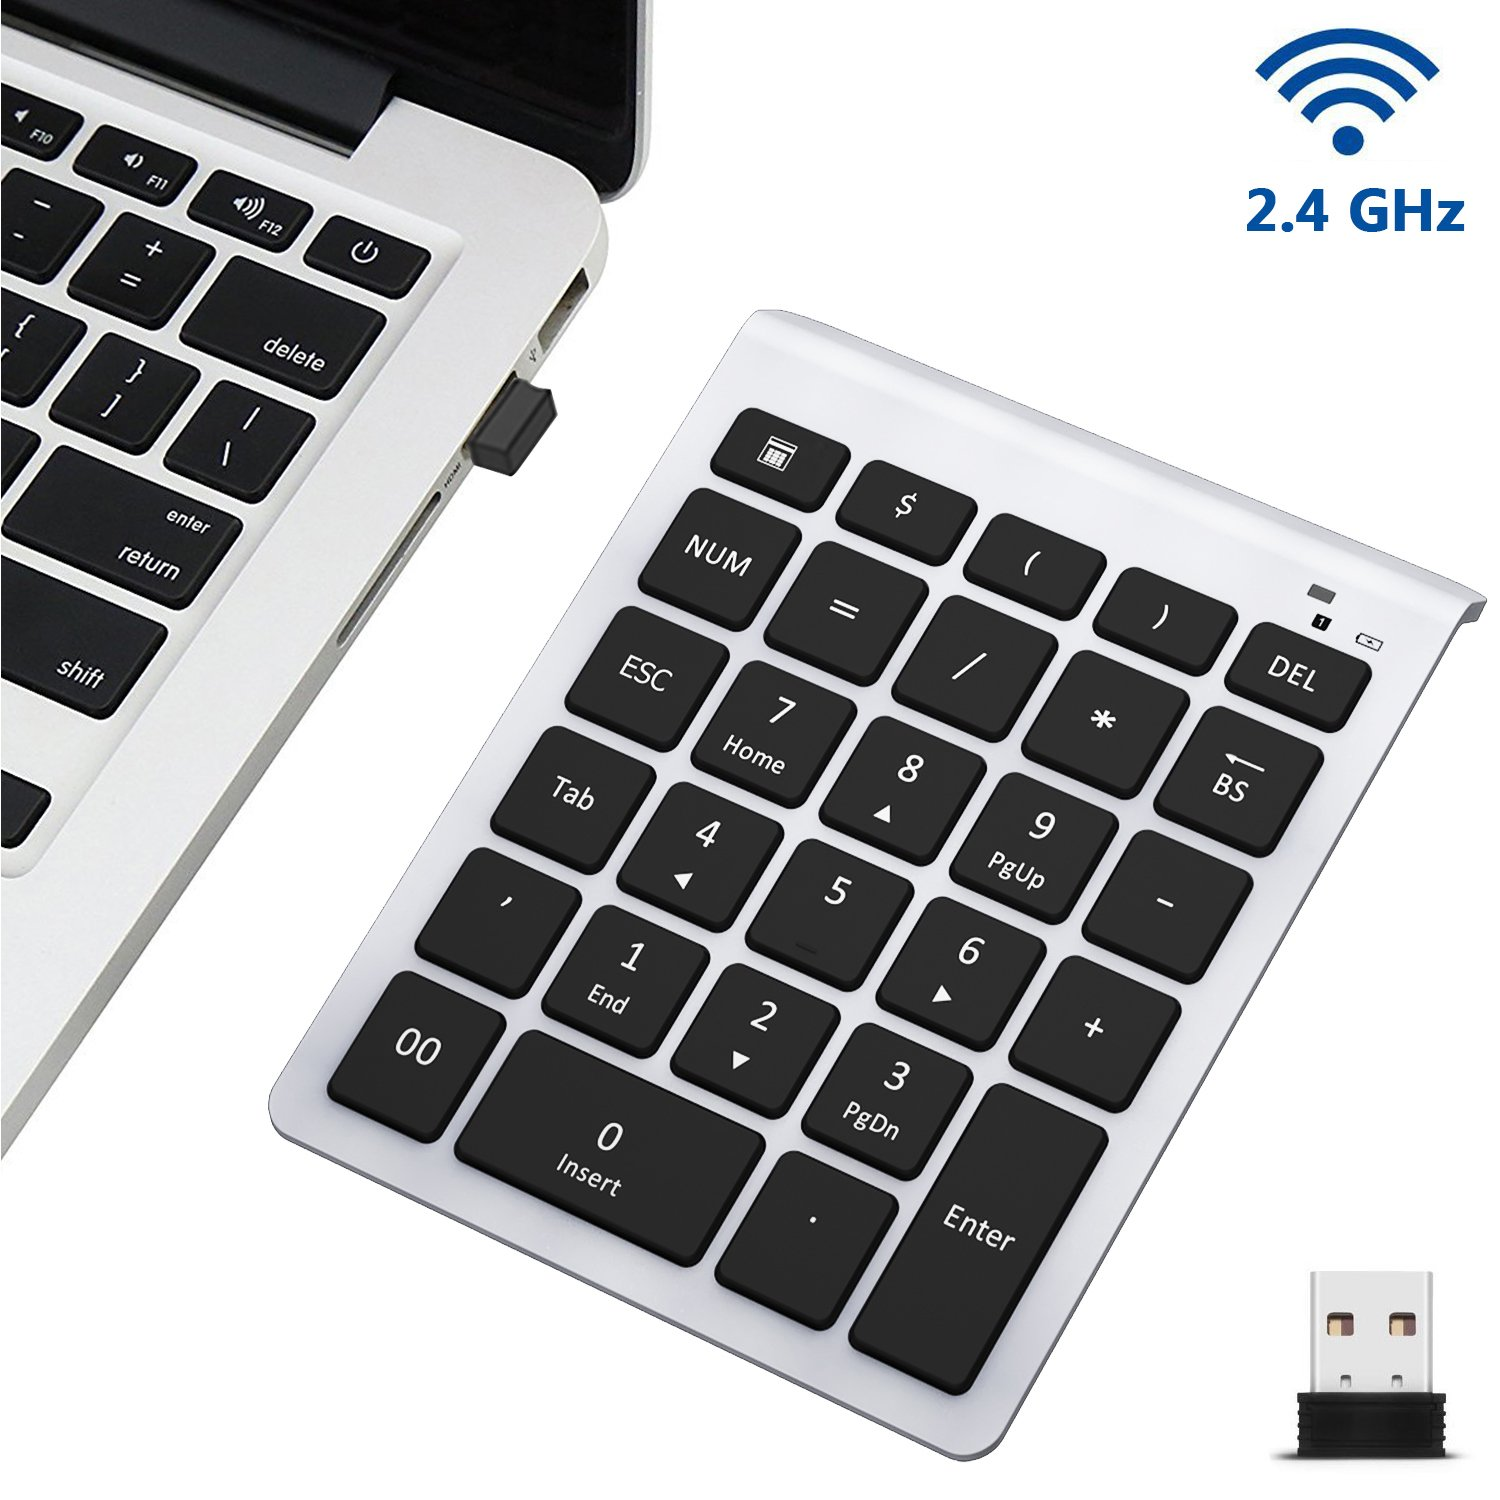 Wireless Number Pad, 7Lucky 2.4G Multi-Function Numeric Keypad : 28 Key Numpad Keyboard With Mini USB Receiver for Laptop Desktop PC Notebook, Surface pro, Windows 7, 8, 10, XP, Vista - Silver